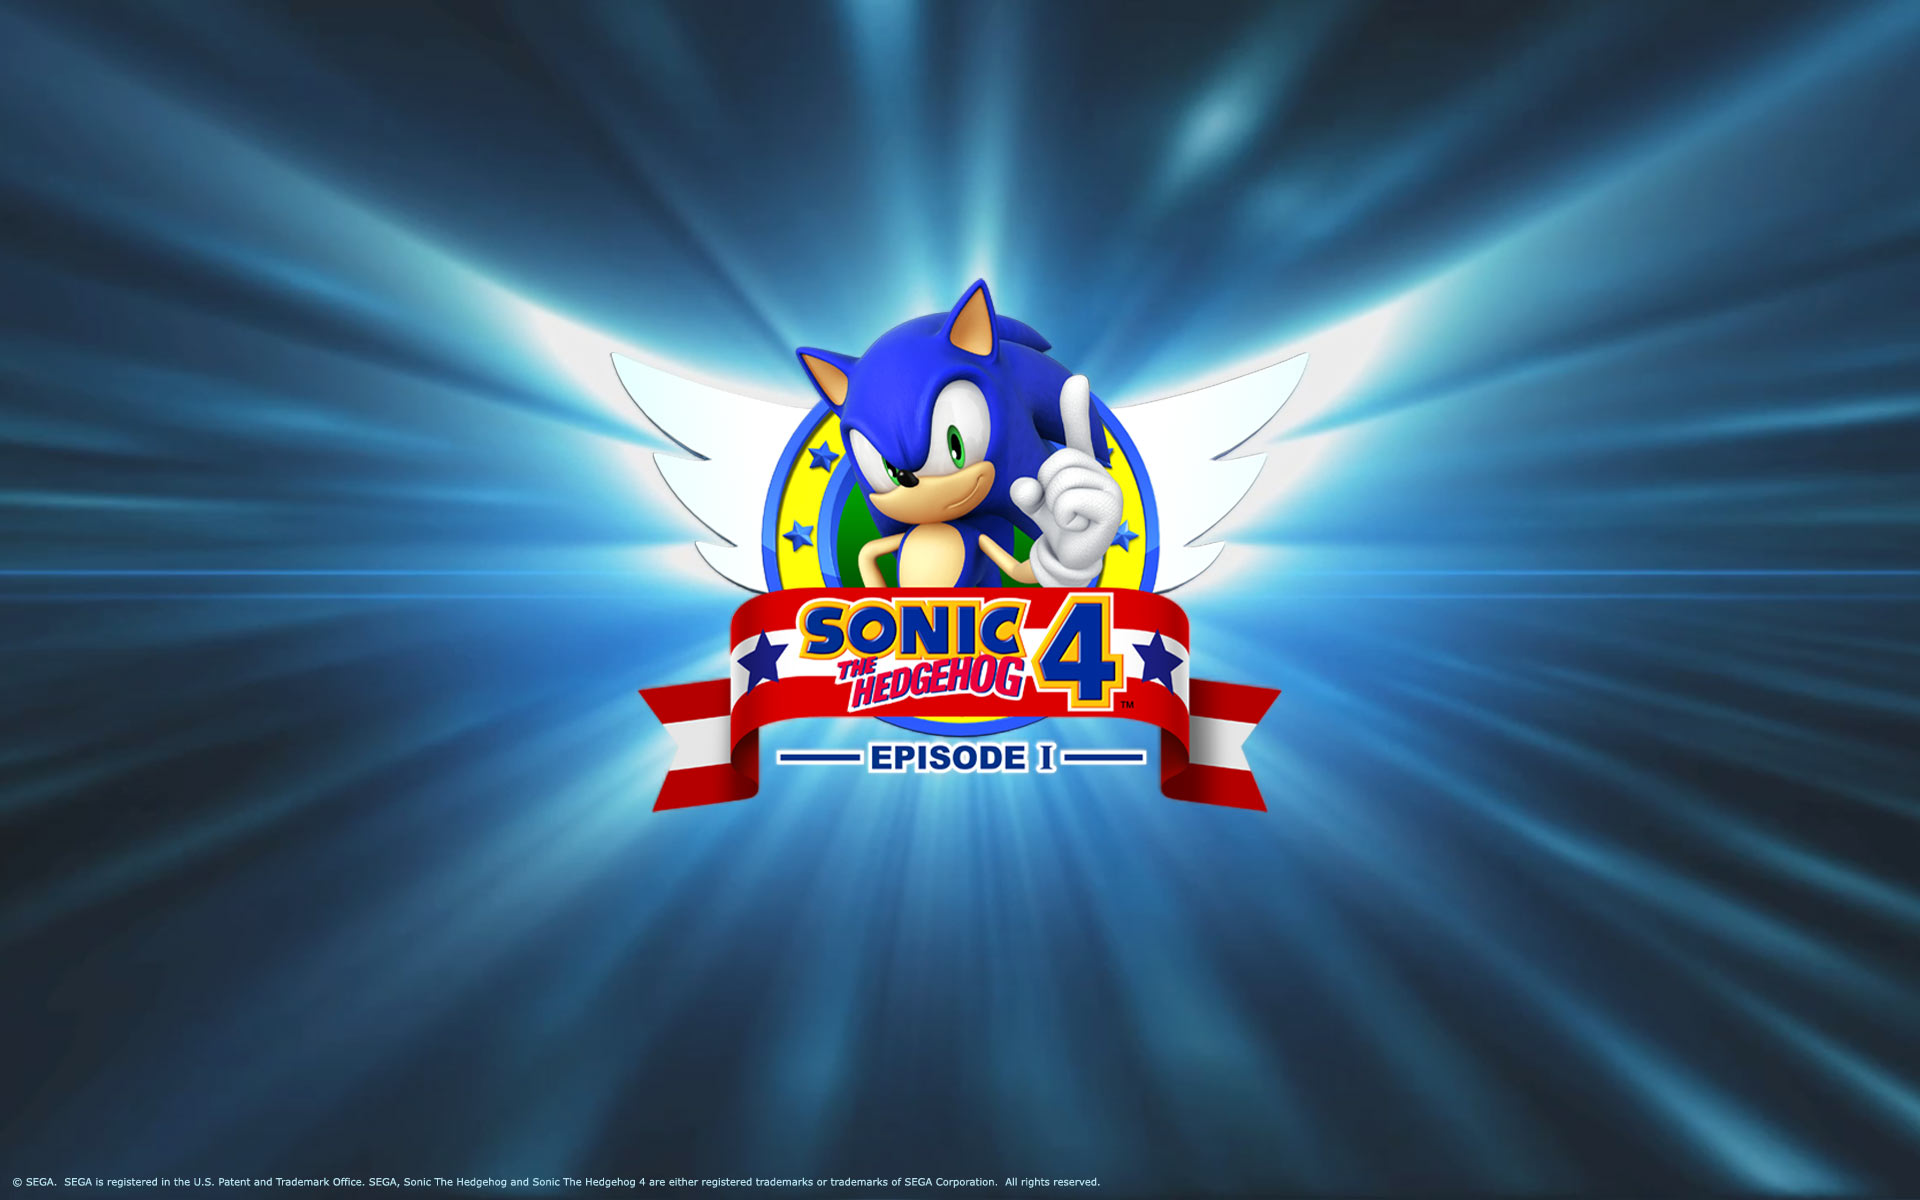 4 sonic the hedgehog 4 episode i hd wallpapers background images wallpaper abyss. Black Bedroom Furniture Sets. Home Design Ideas